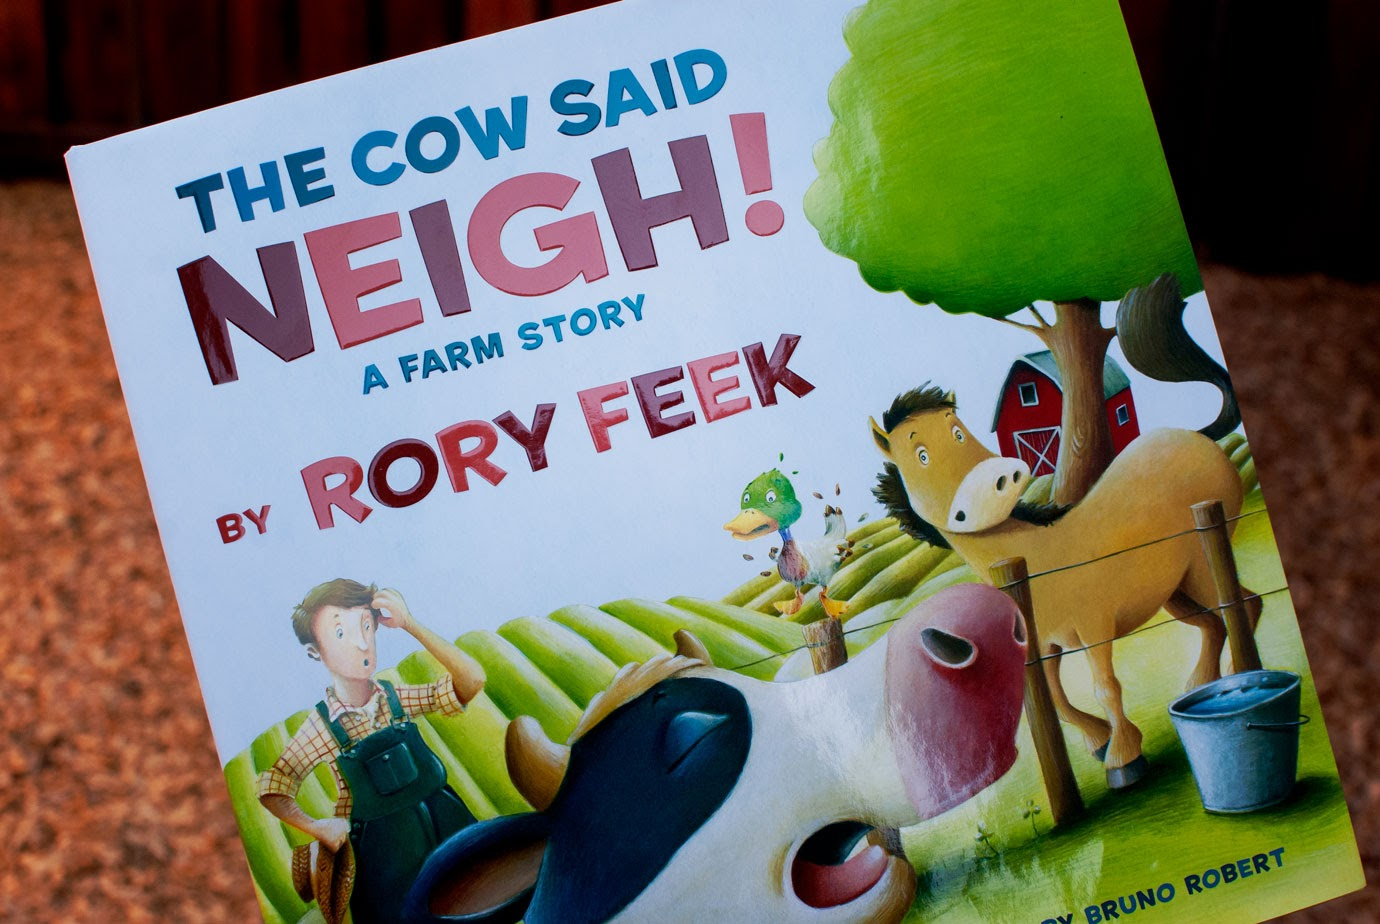 The Cow Said Neigh! Front of Book Cover